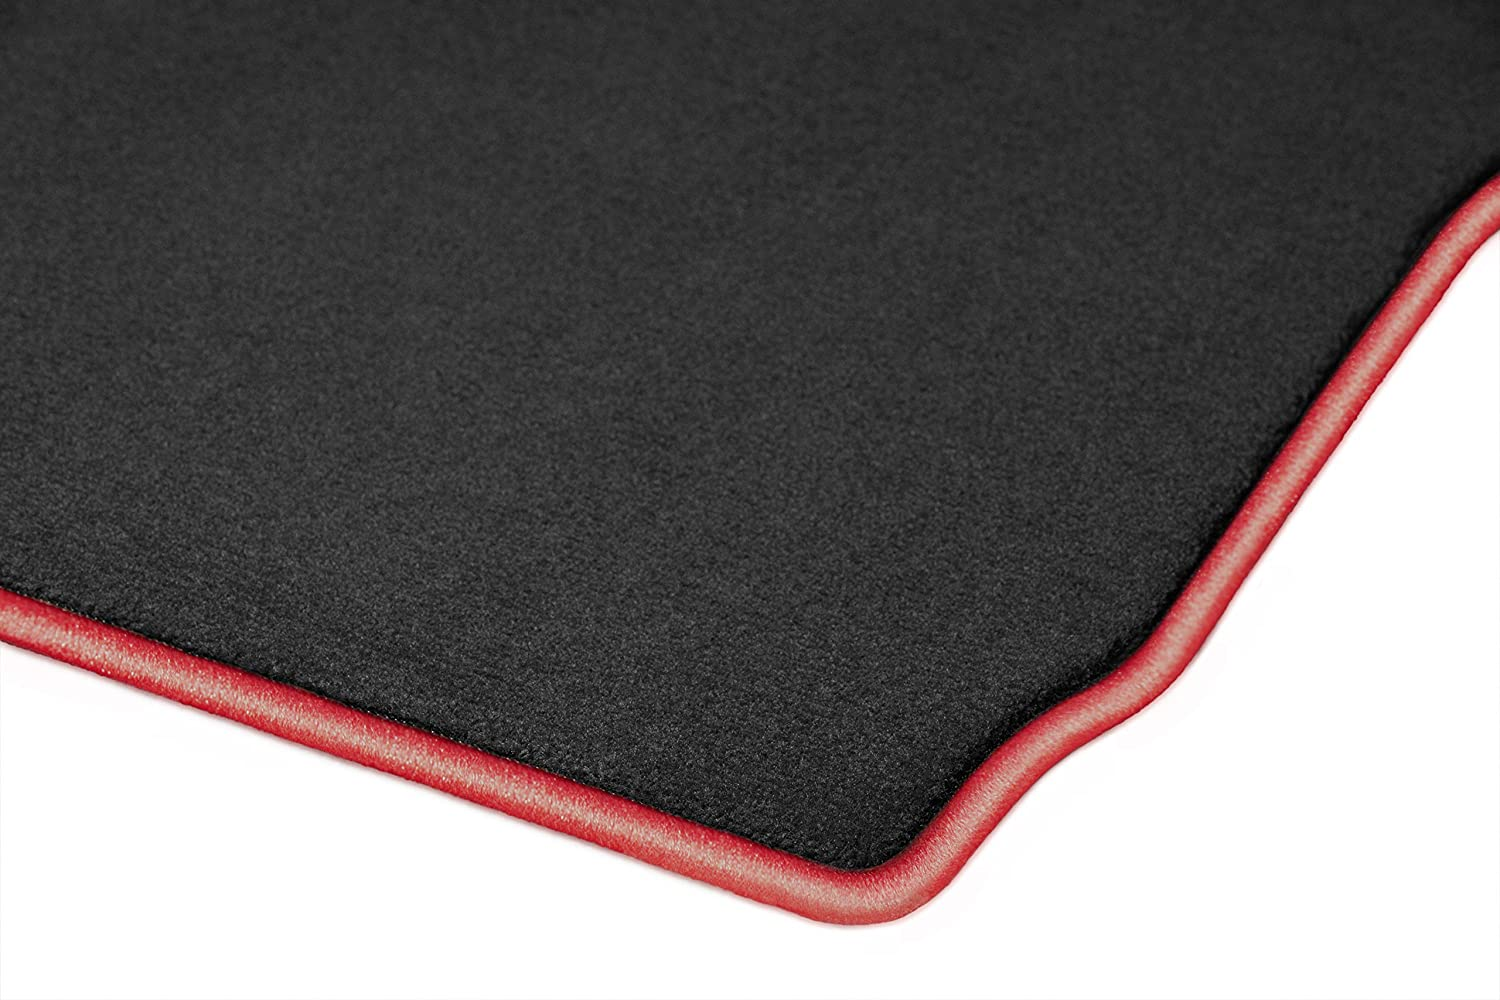 GGBAILEY D4570A-S2B-BLK/_BR Custom Fit Car Mats for 2007 2008 Passenger /& Rear Floor 2010 Saturn Outlook Black with Red Edging Driver 2009